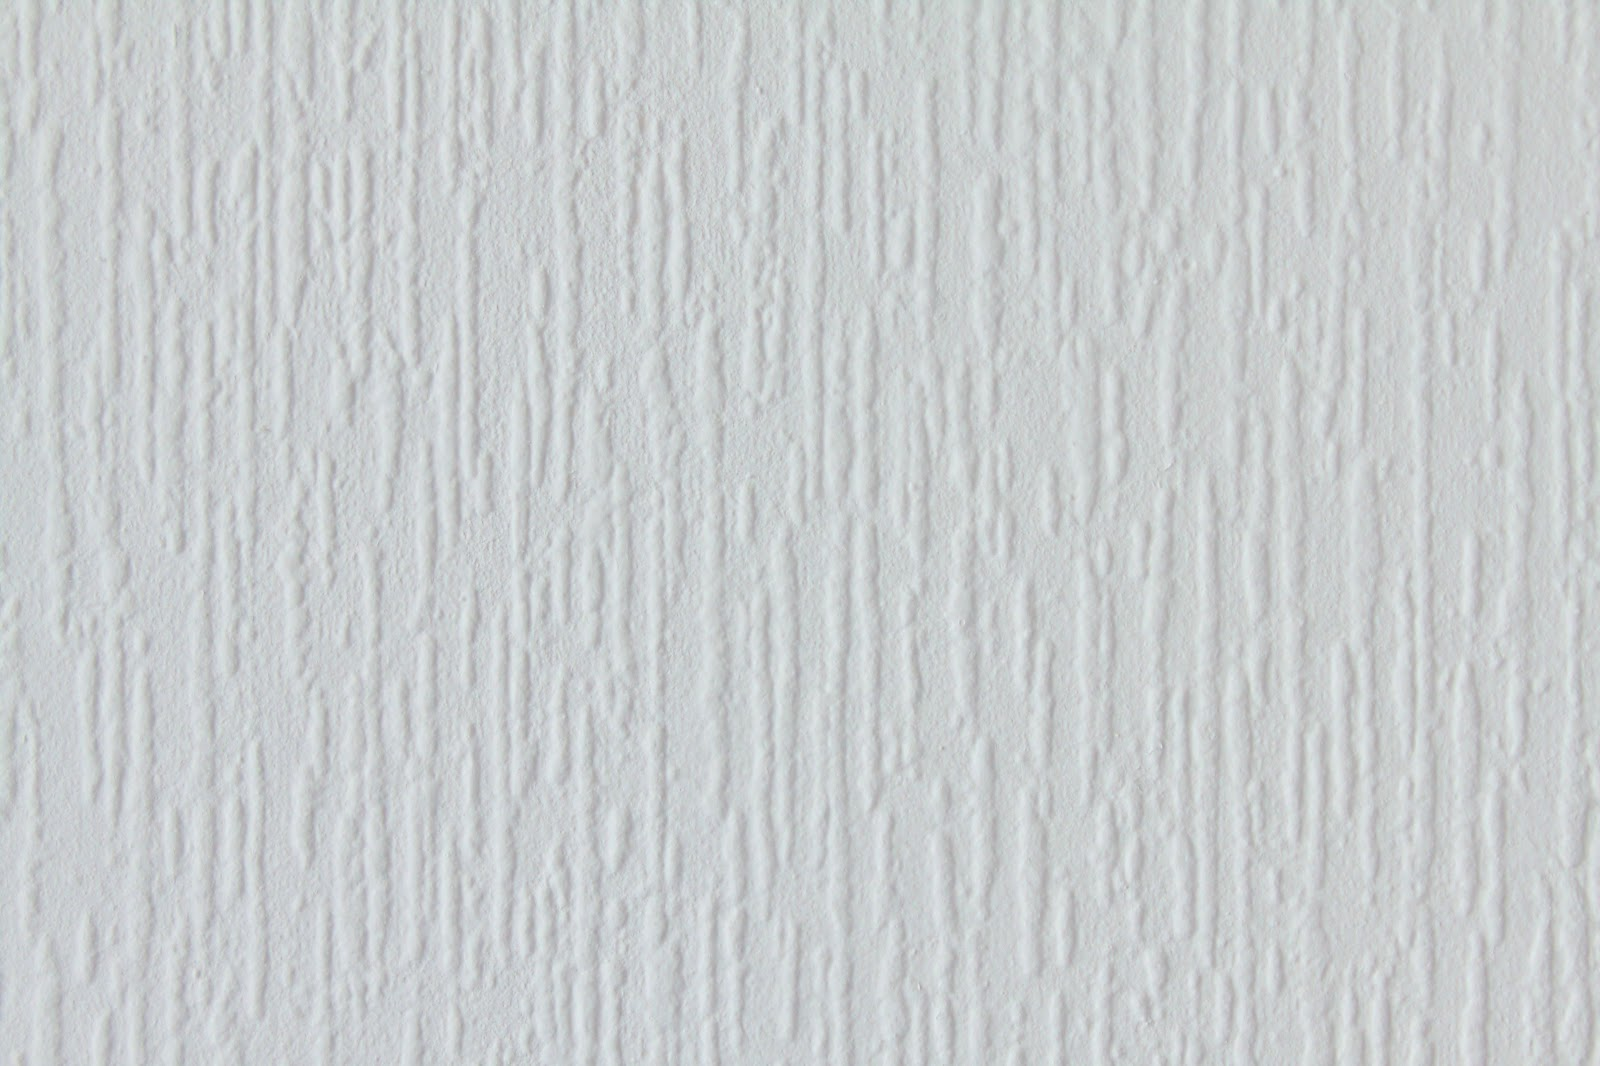 White stucco plaster wall paper texture 2